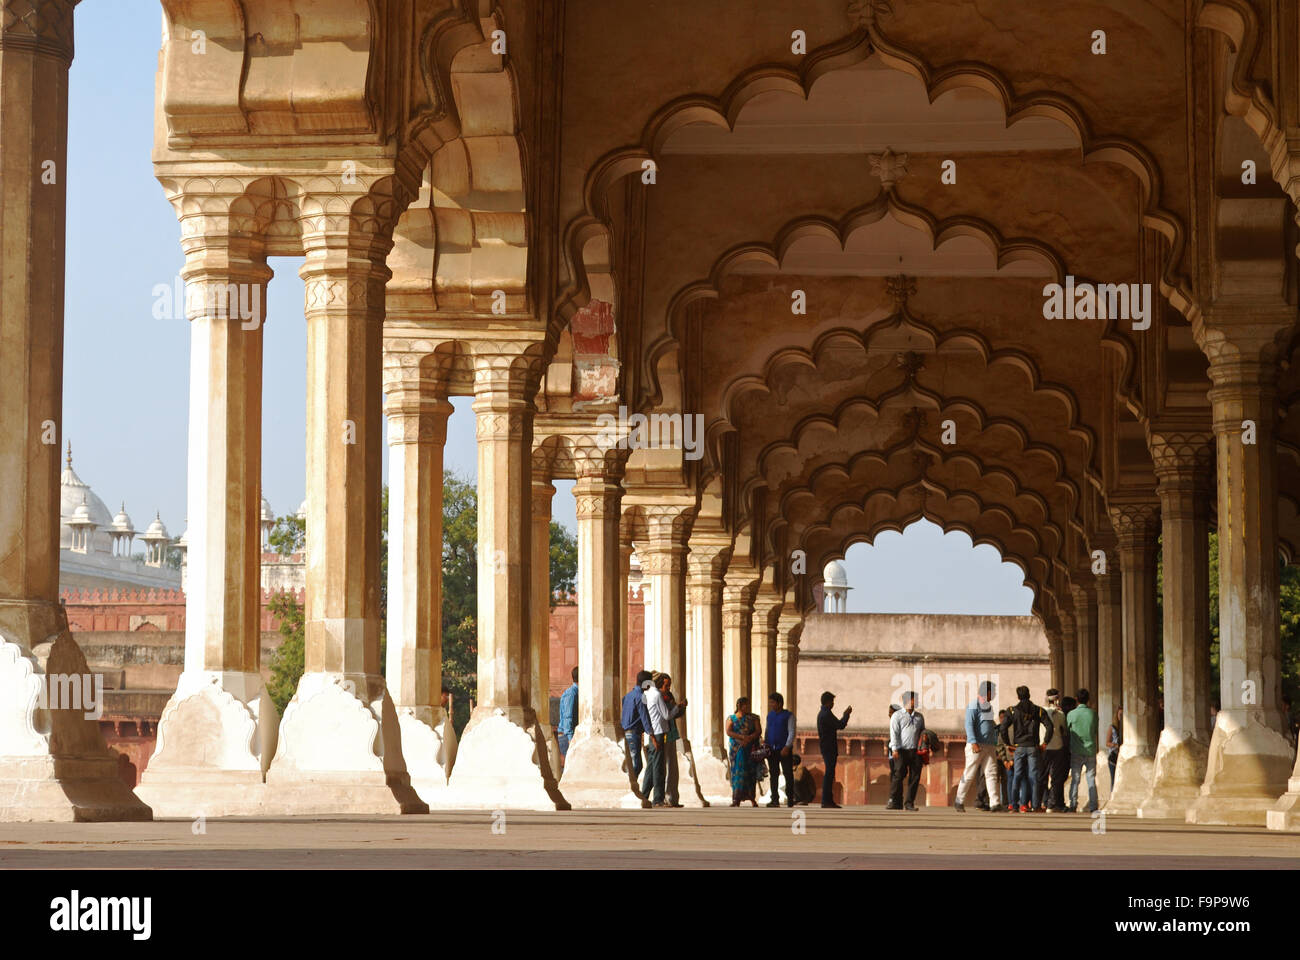 diwan i am , marble building inside agra fort,agra,india.This is a unesco world heritage site. Stock Photo